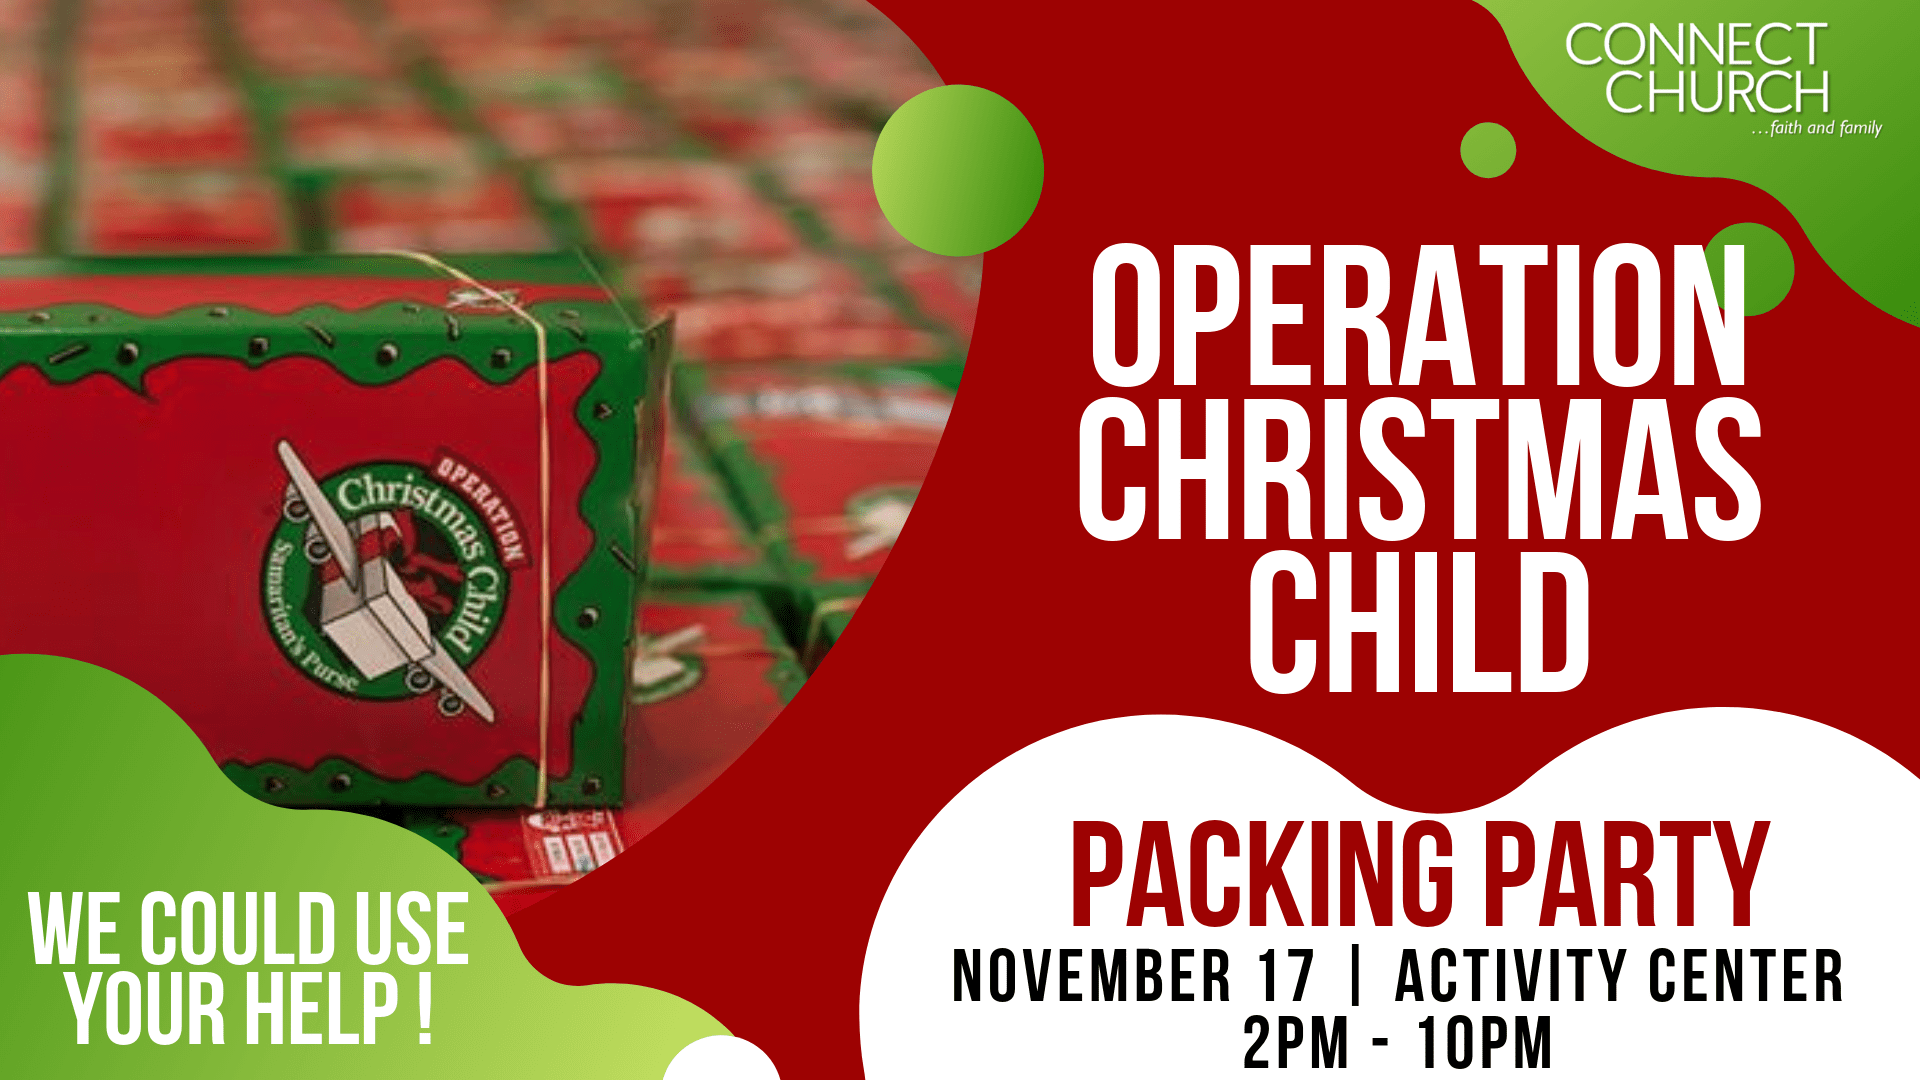 Operation Christmas Child Png.Operation Christmas Child Packing Party Connect Church